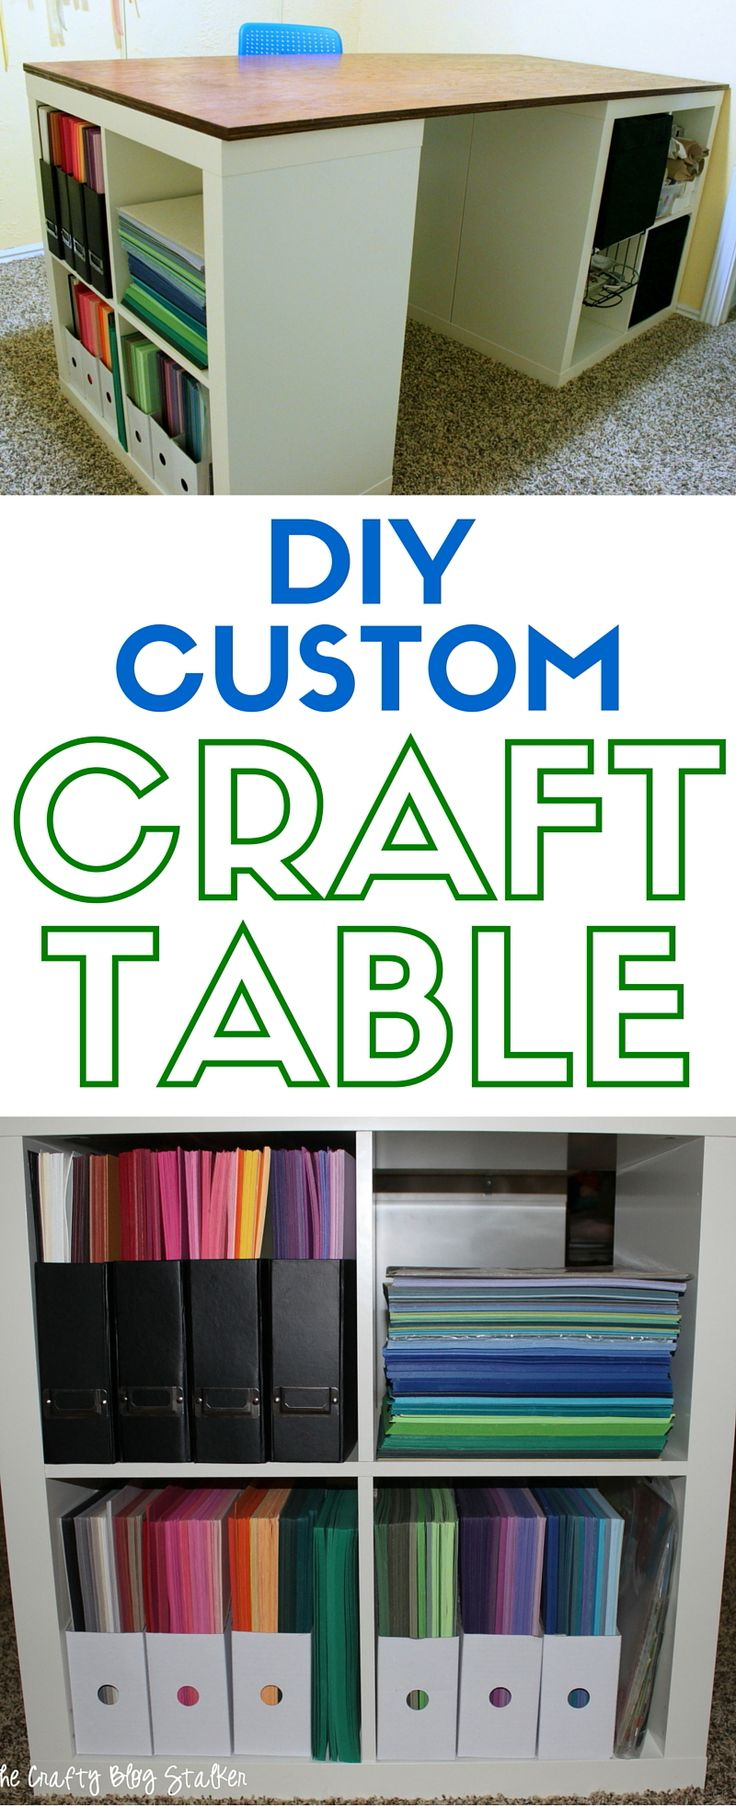 How to make a custom craft table using Ikea Kallax shelves and a tabletop. This is a DIY table that you can make for your craft room.